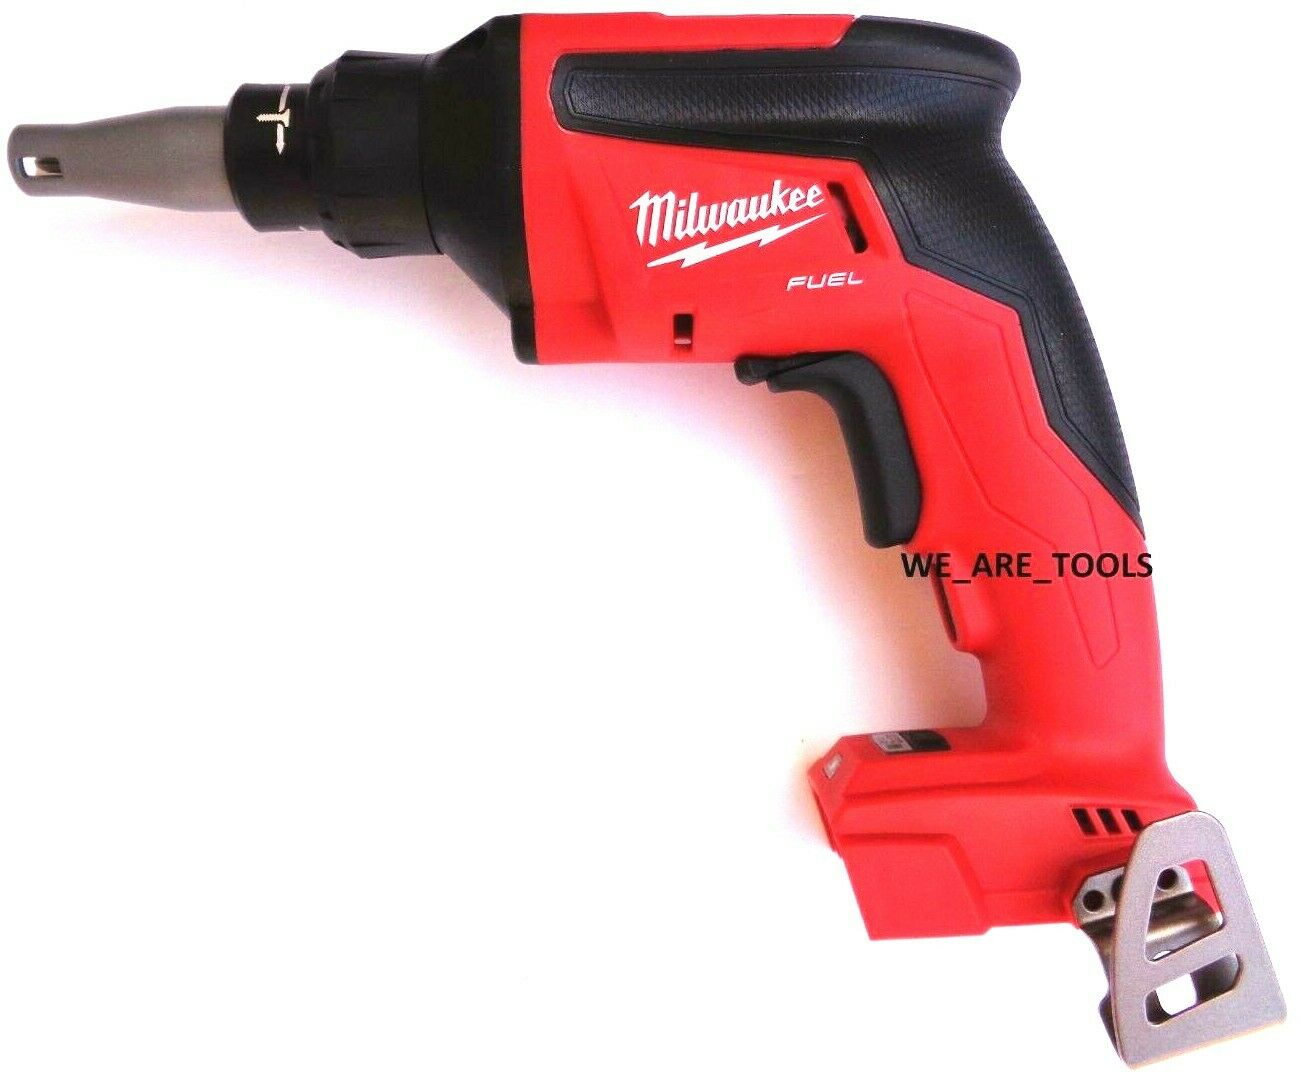 Milwaukee Fuel 2866-20 Drywall Screwgun Drill M18 Brushless Cordless 18 Volt. Buy it now for 134.97